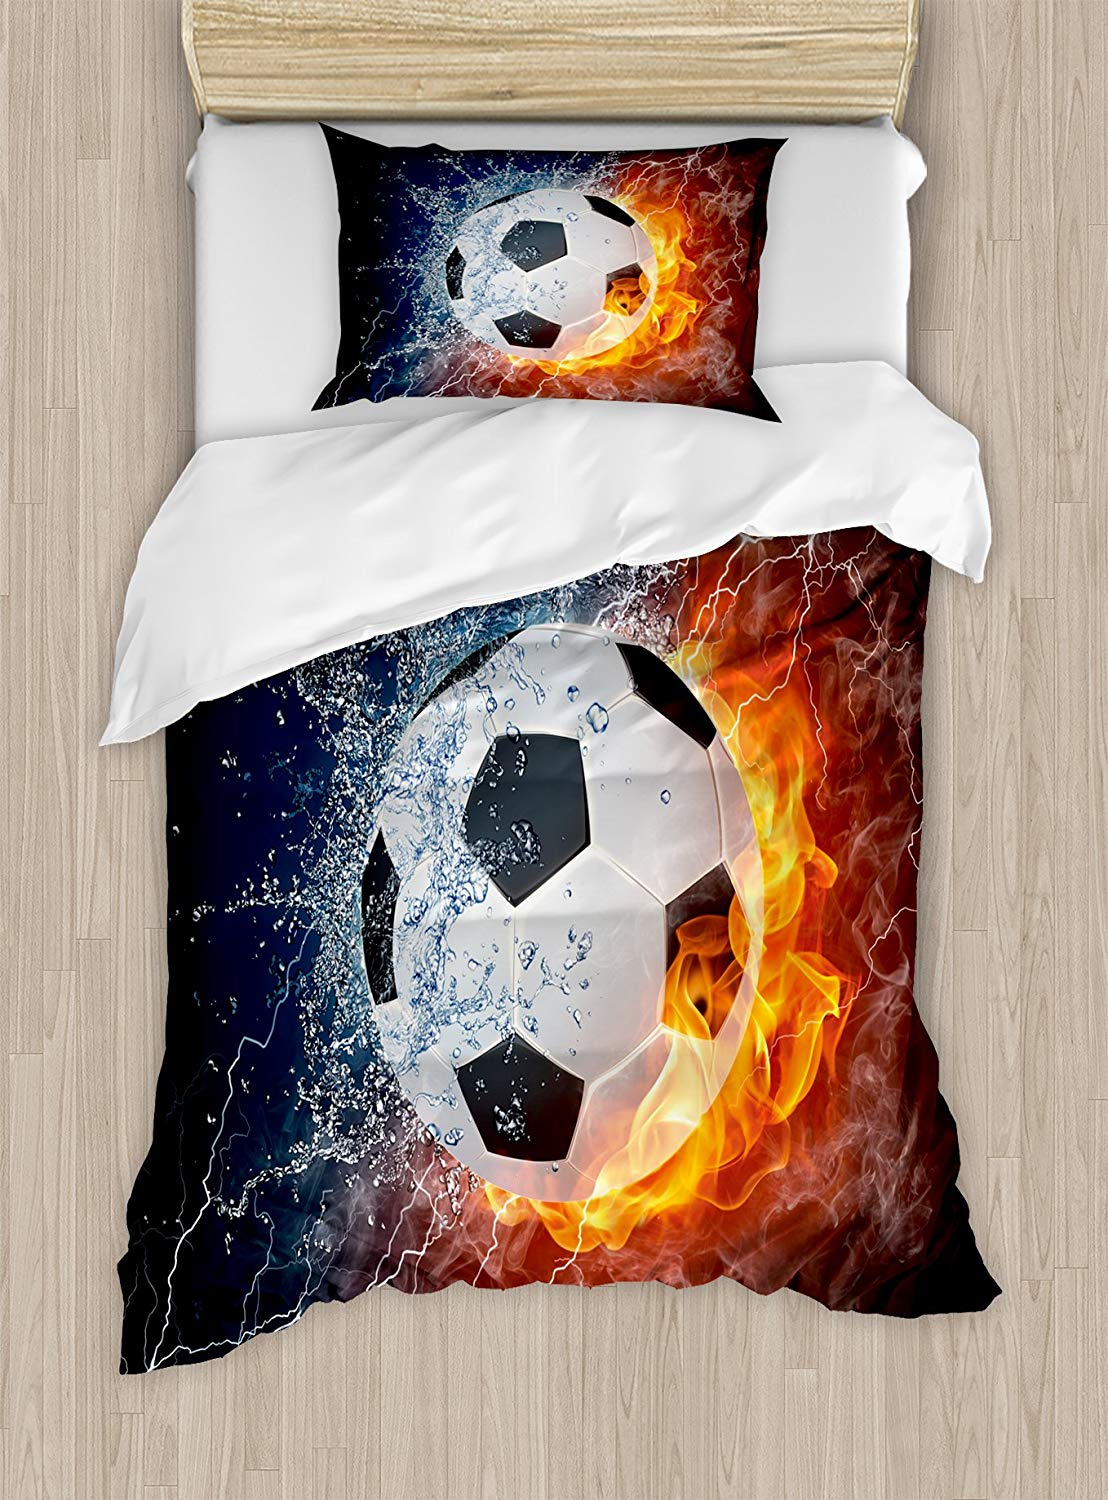 Sports Decor Duvet Cover Set Soccer Ball On Fire And Water